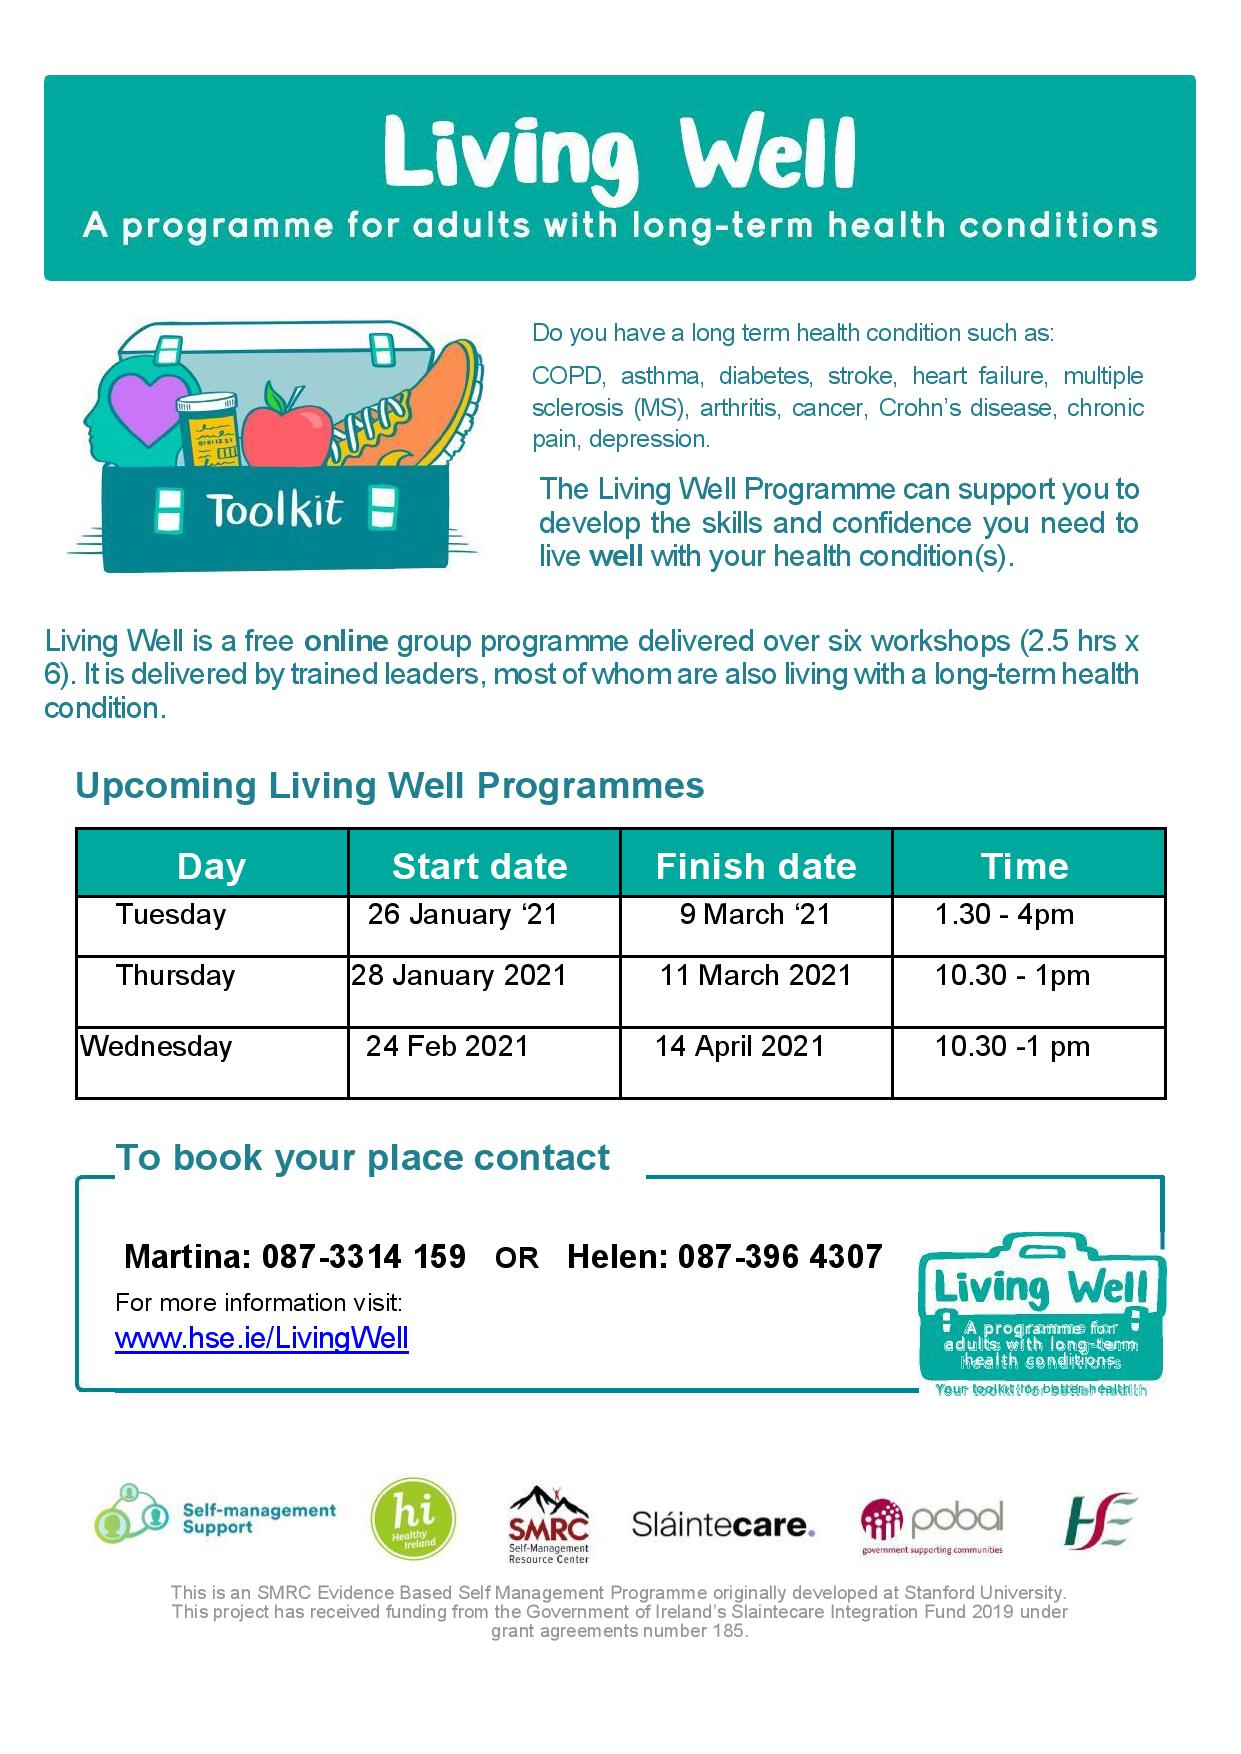 Living Well - a programme for adults with long term health conditions